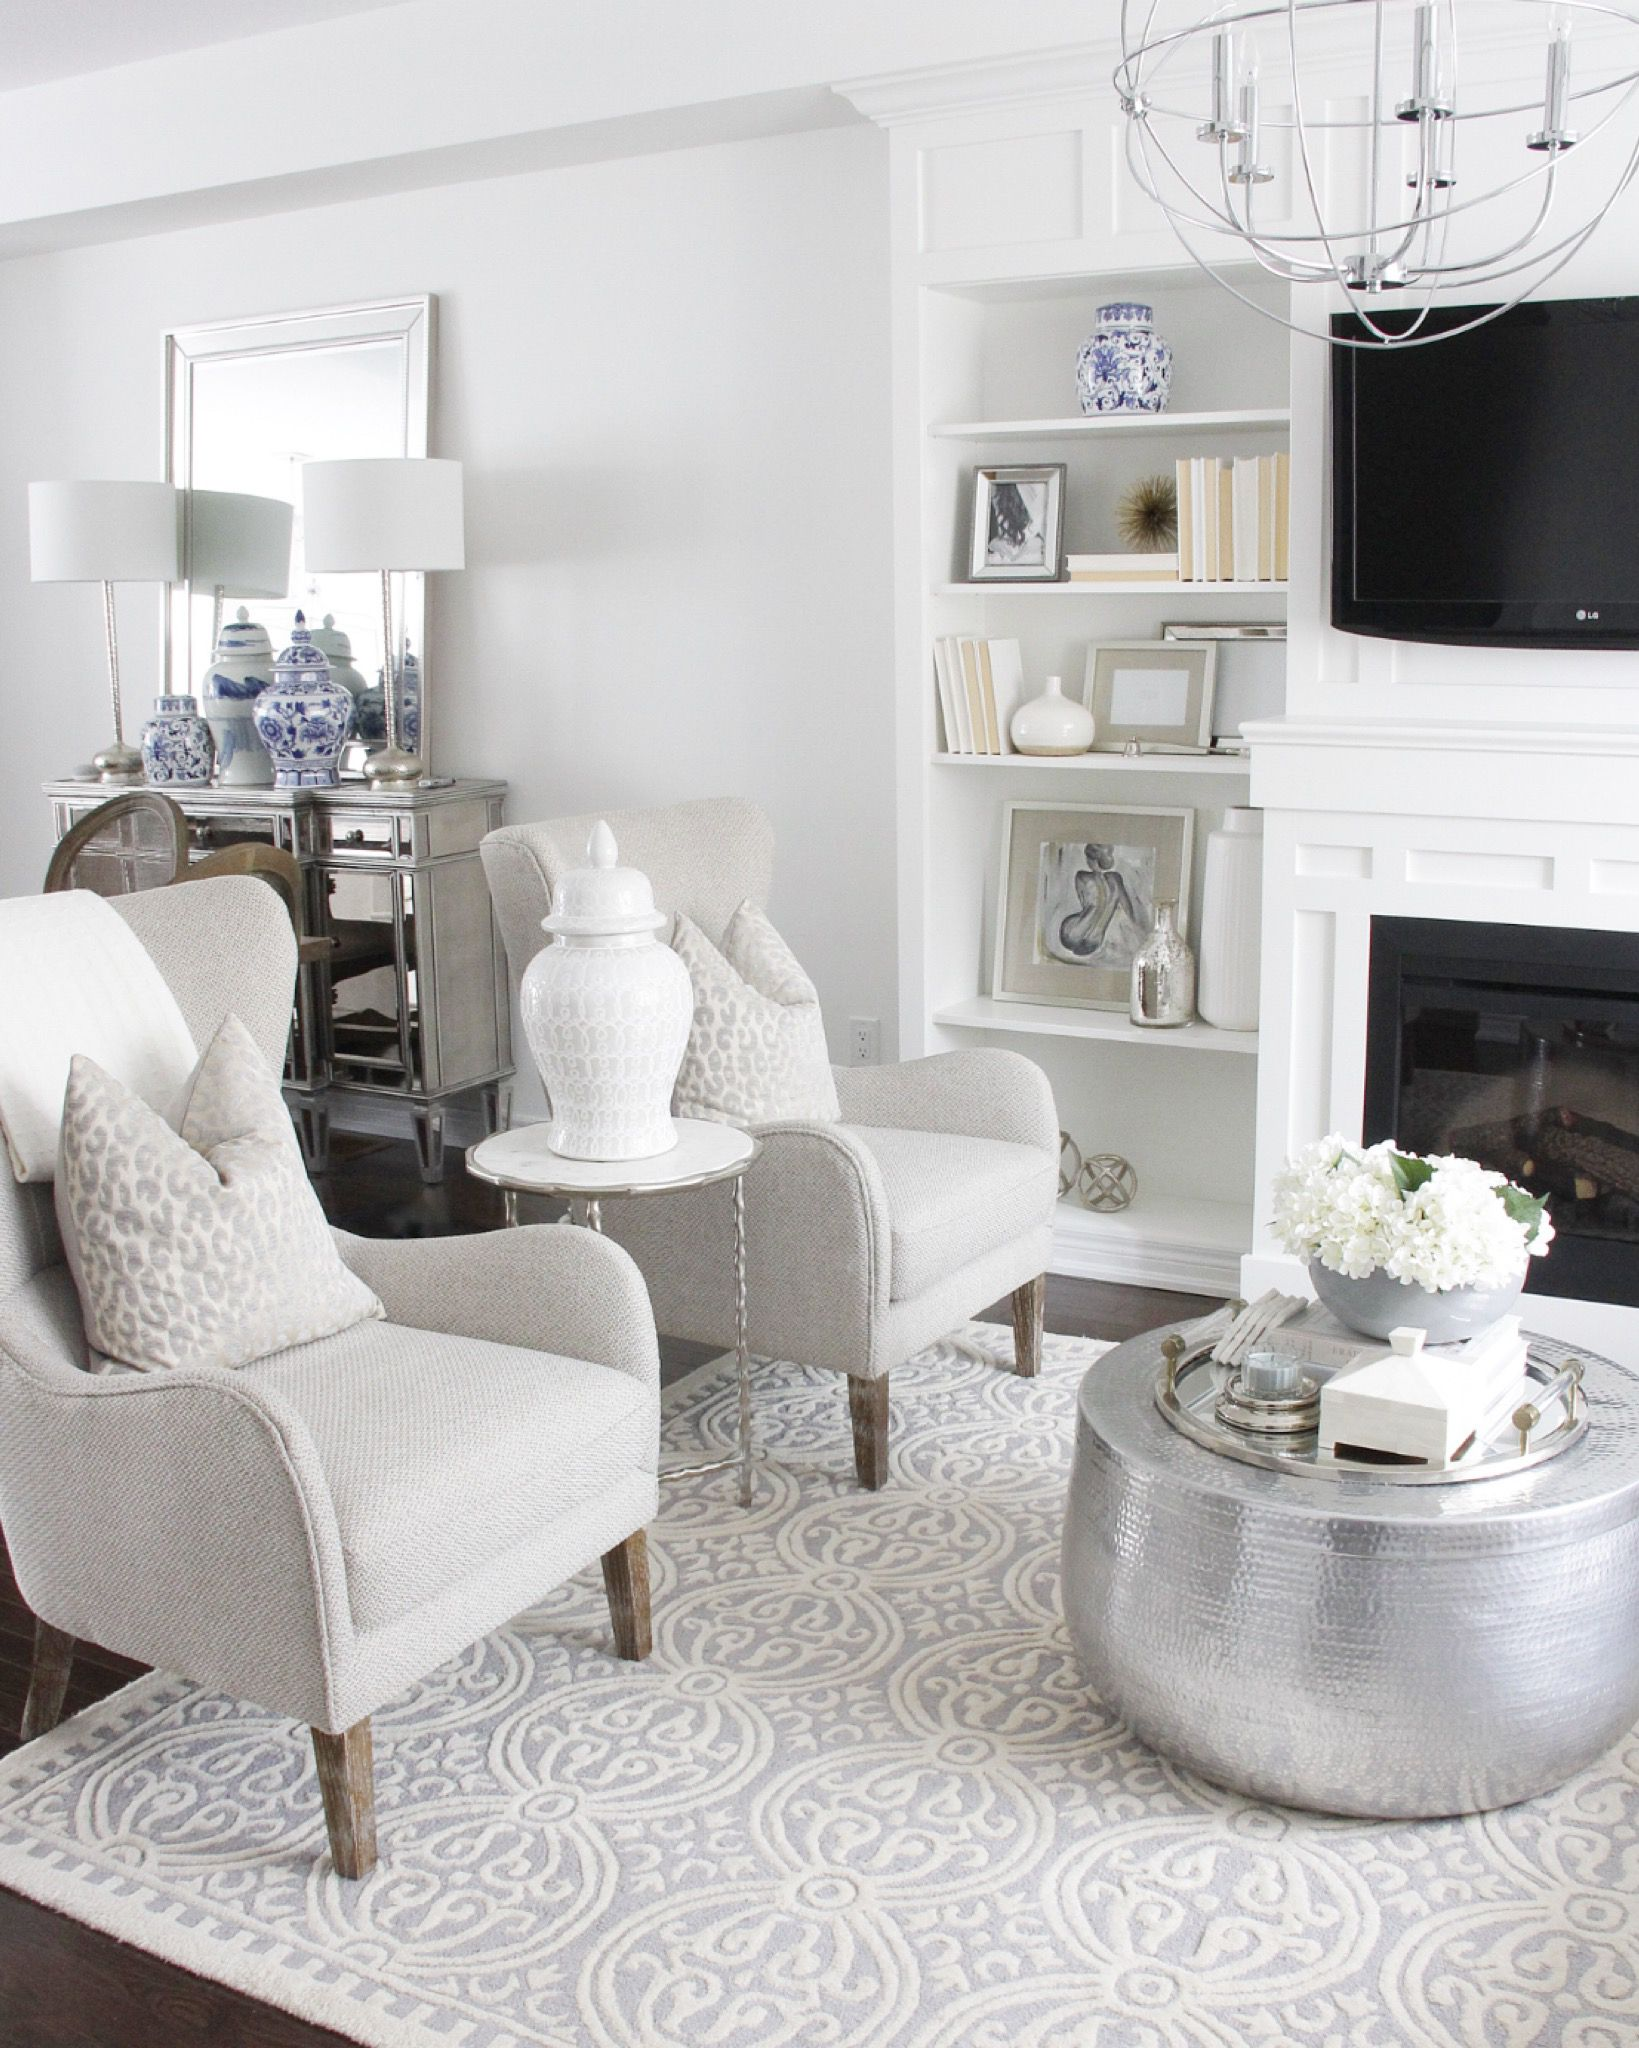 Tap to shop photo! #BuiltIns #DIYProject #Fireplace #LivingRoom #WhiteDecor #WhiteHome #WhiteLivingRoom